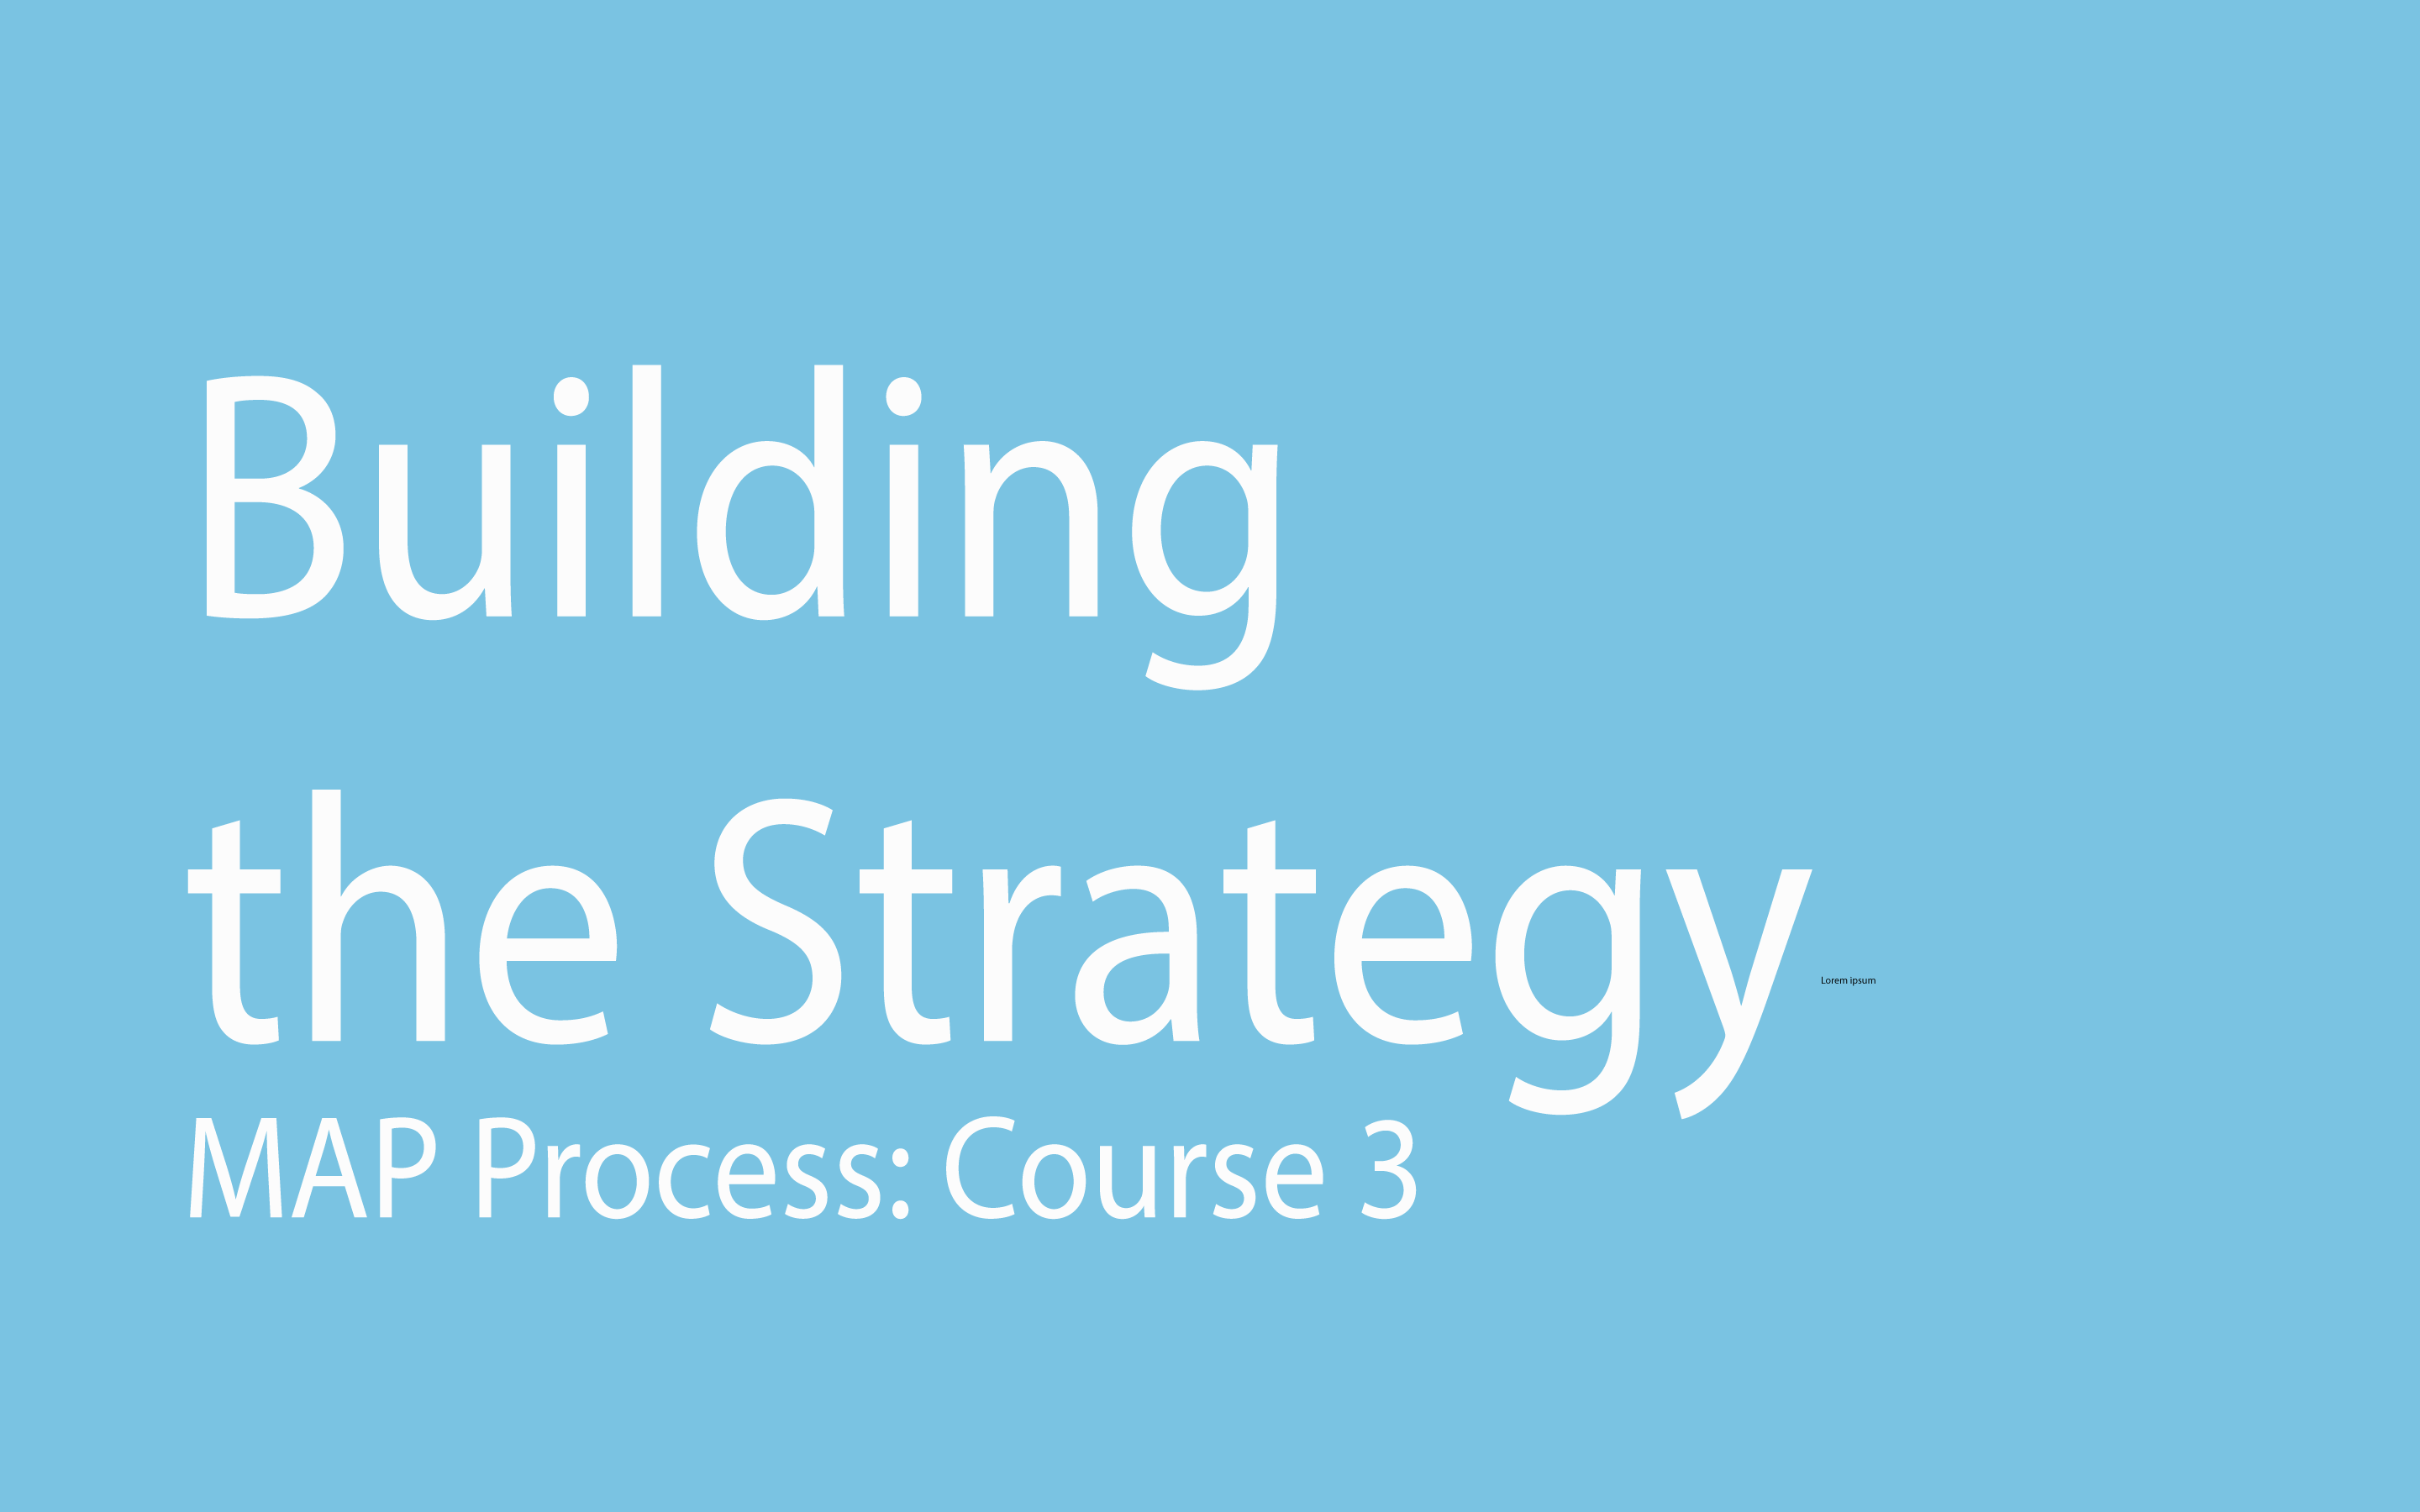 Building the Strategy